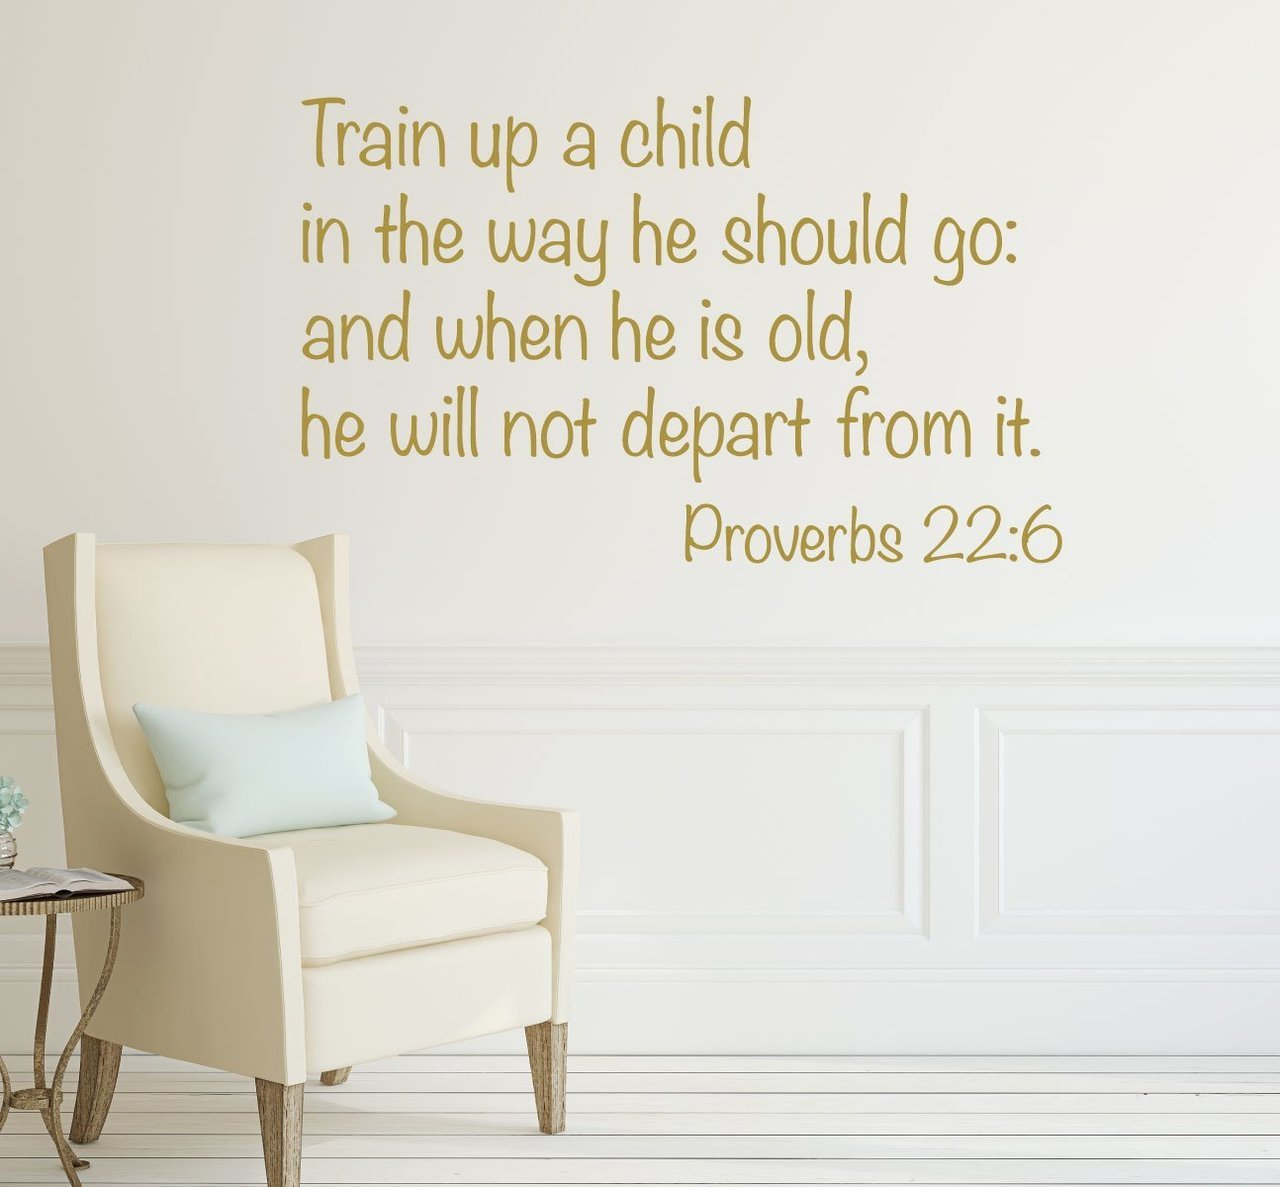 Bible Verse Wall Decals   Proverbs 22:6   Train Up A Child   Christian